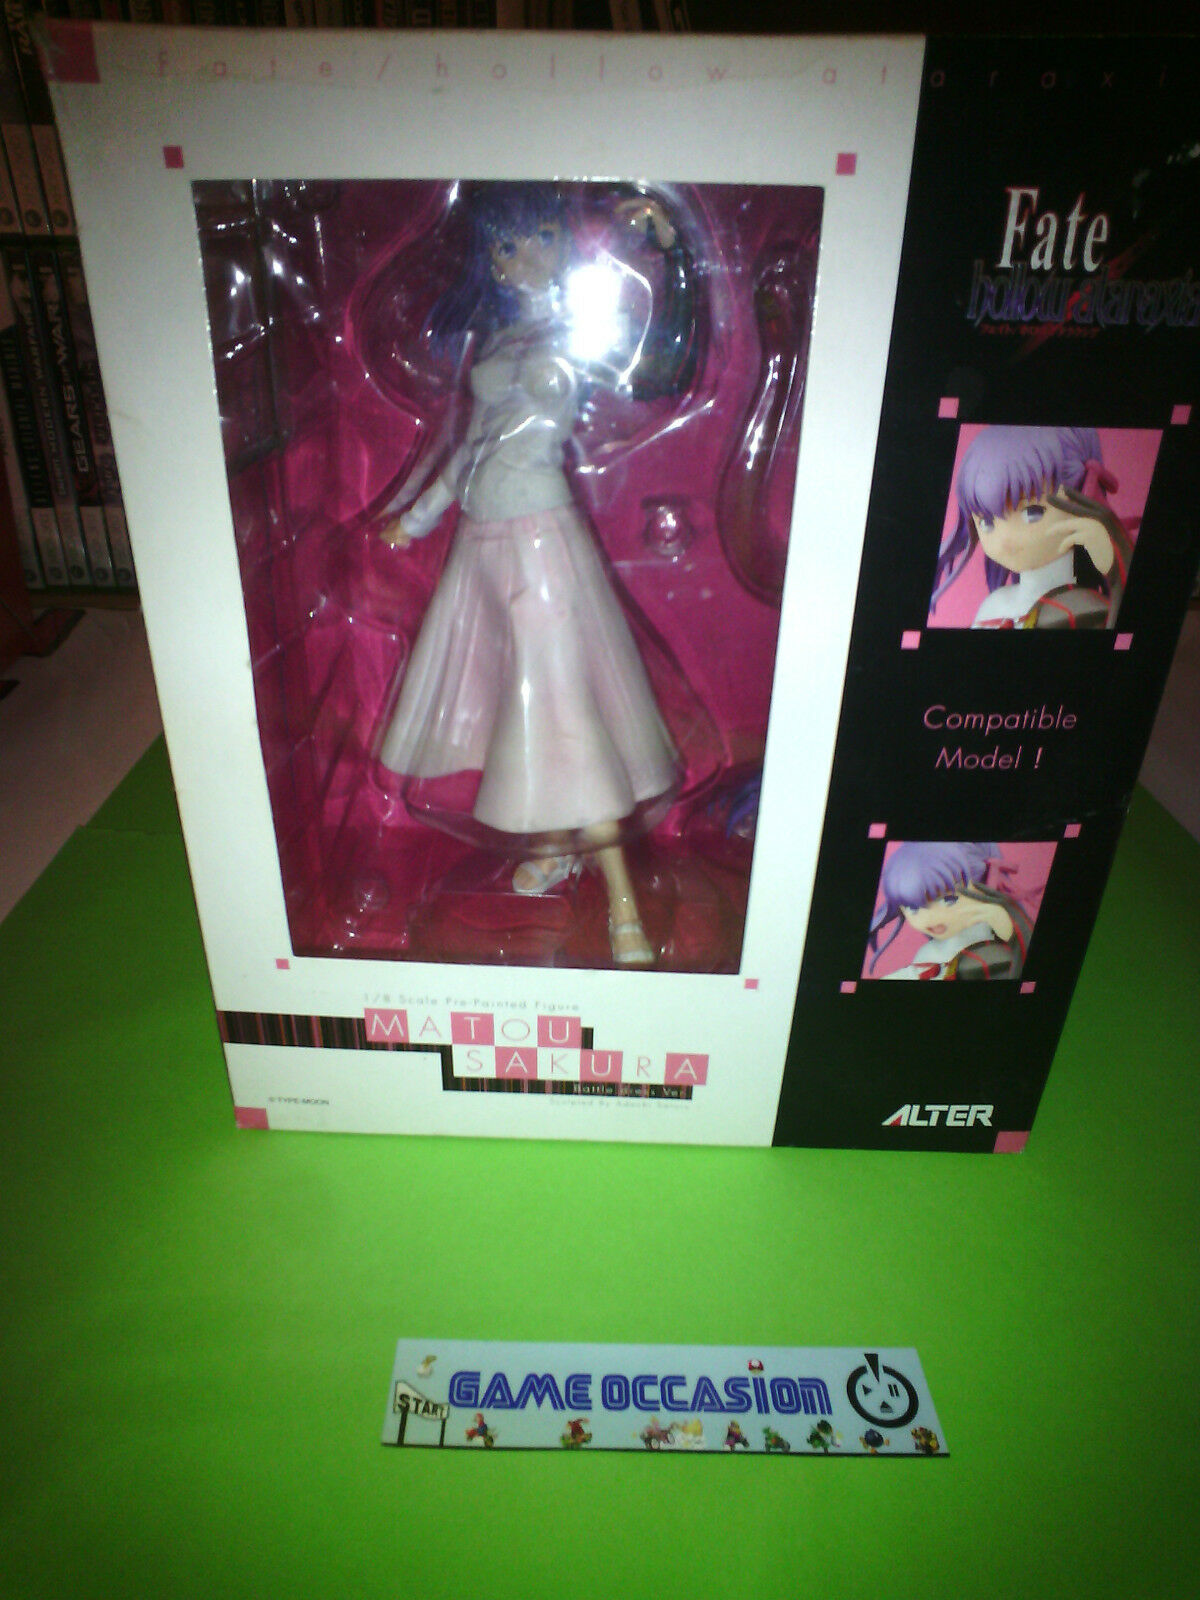 FIGURINE MATOU SAKURA 1 8 SCALE PRE PAINTED FIGURE - FATE HOLLOW ATARAXIA